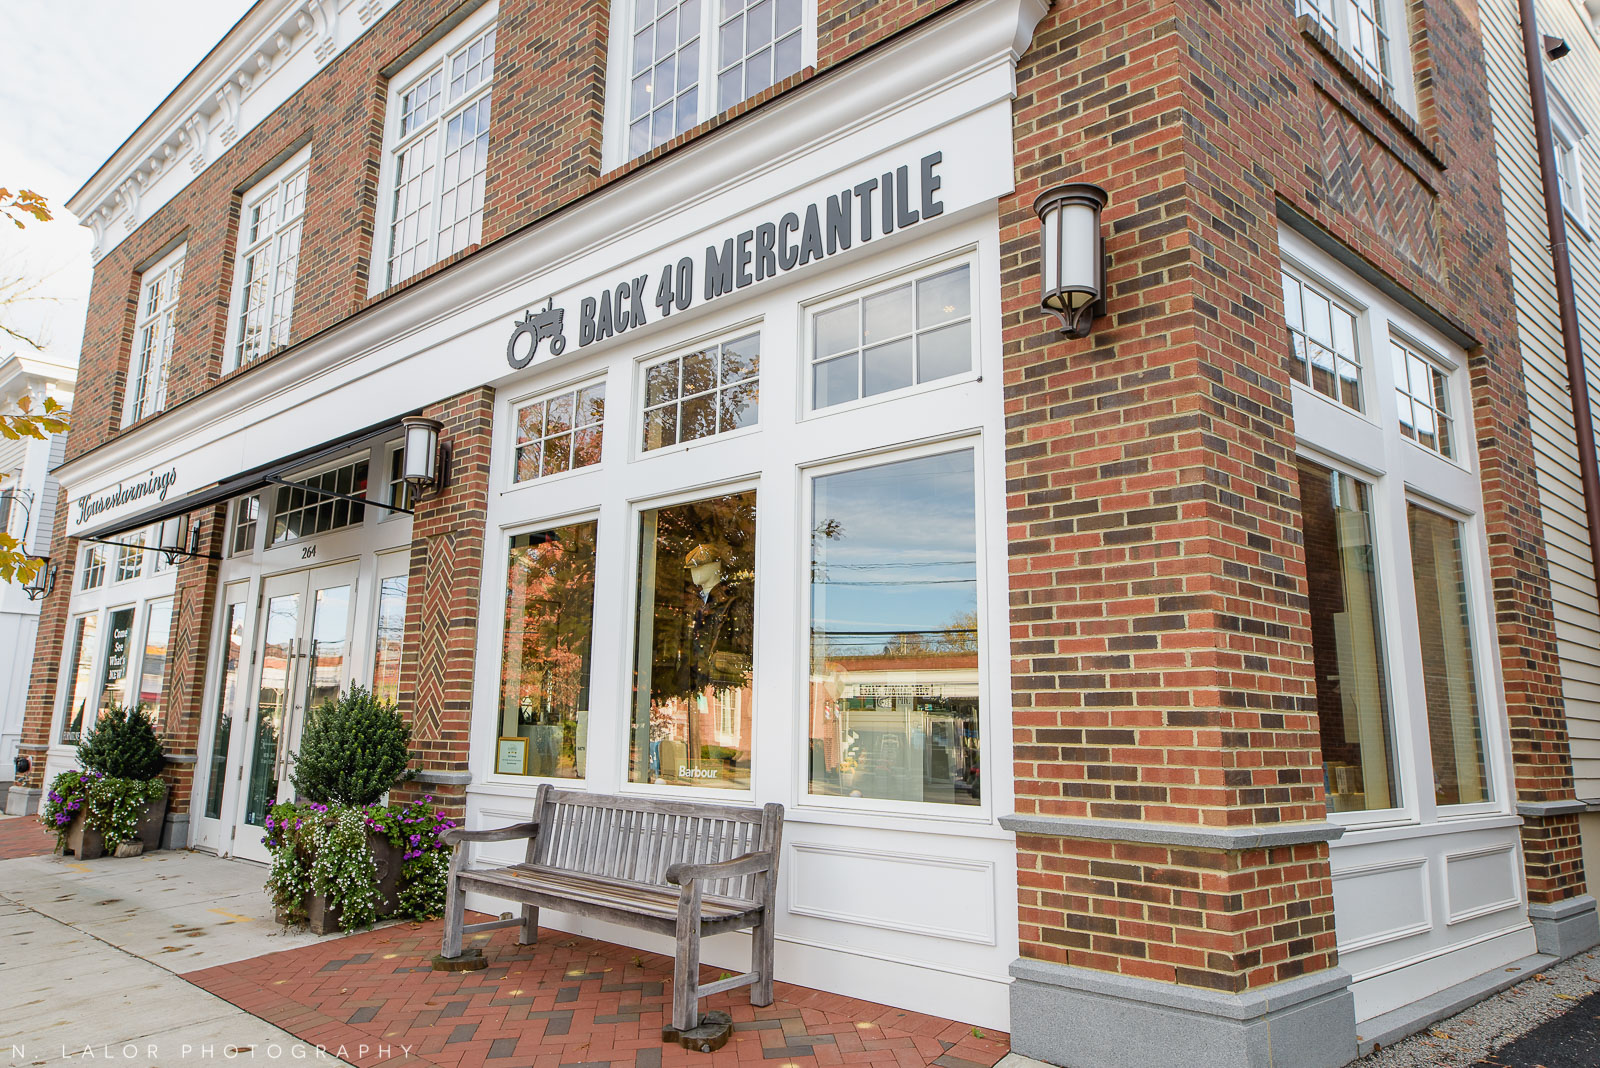 Back 40 Mercantile store exterior in Old Greenwich, Connecticut. Image by N. Lalor Photography.